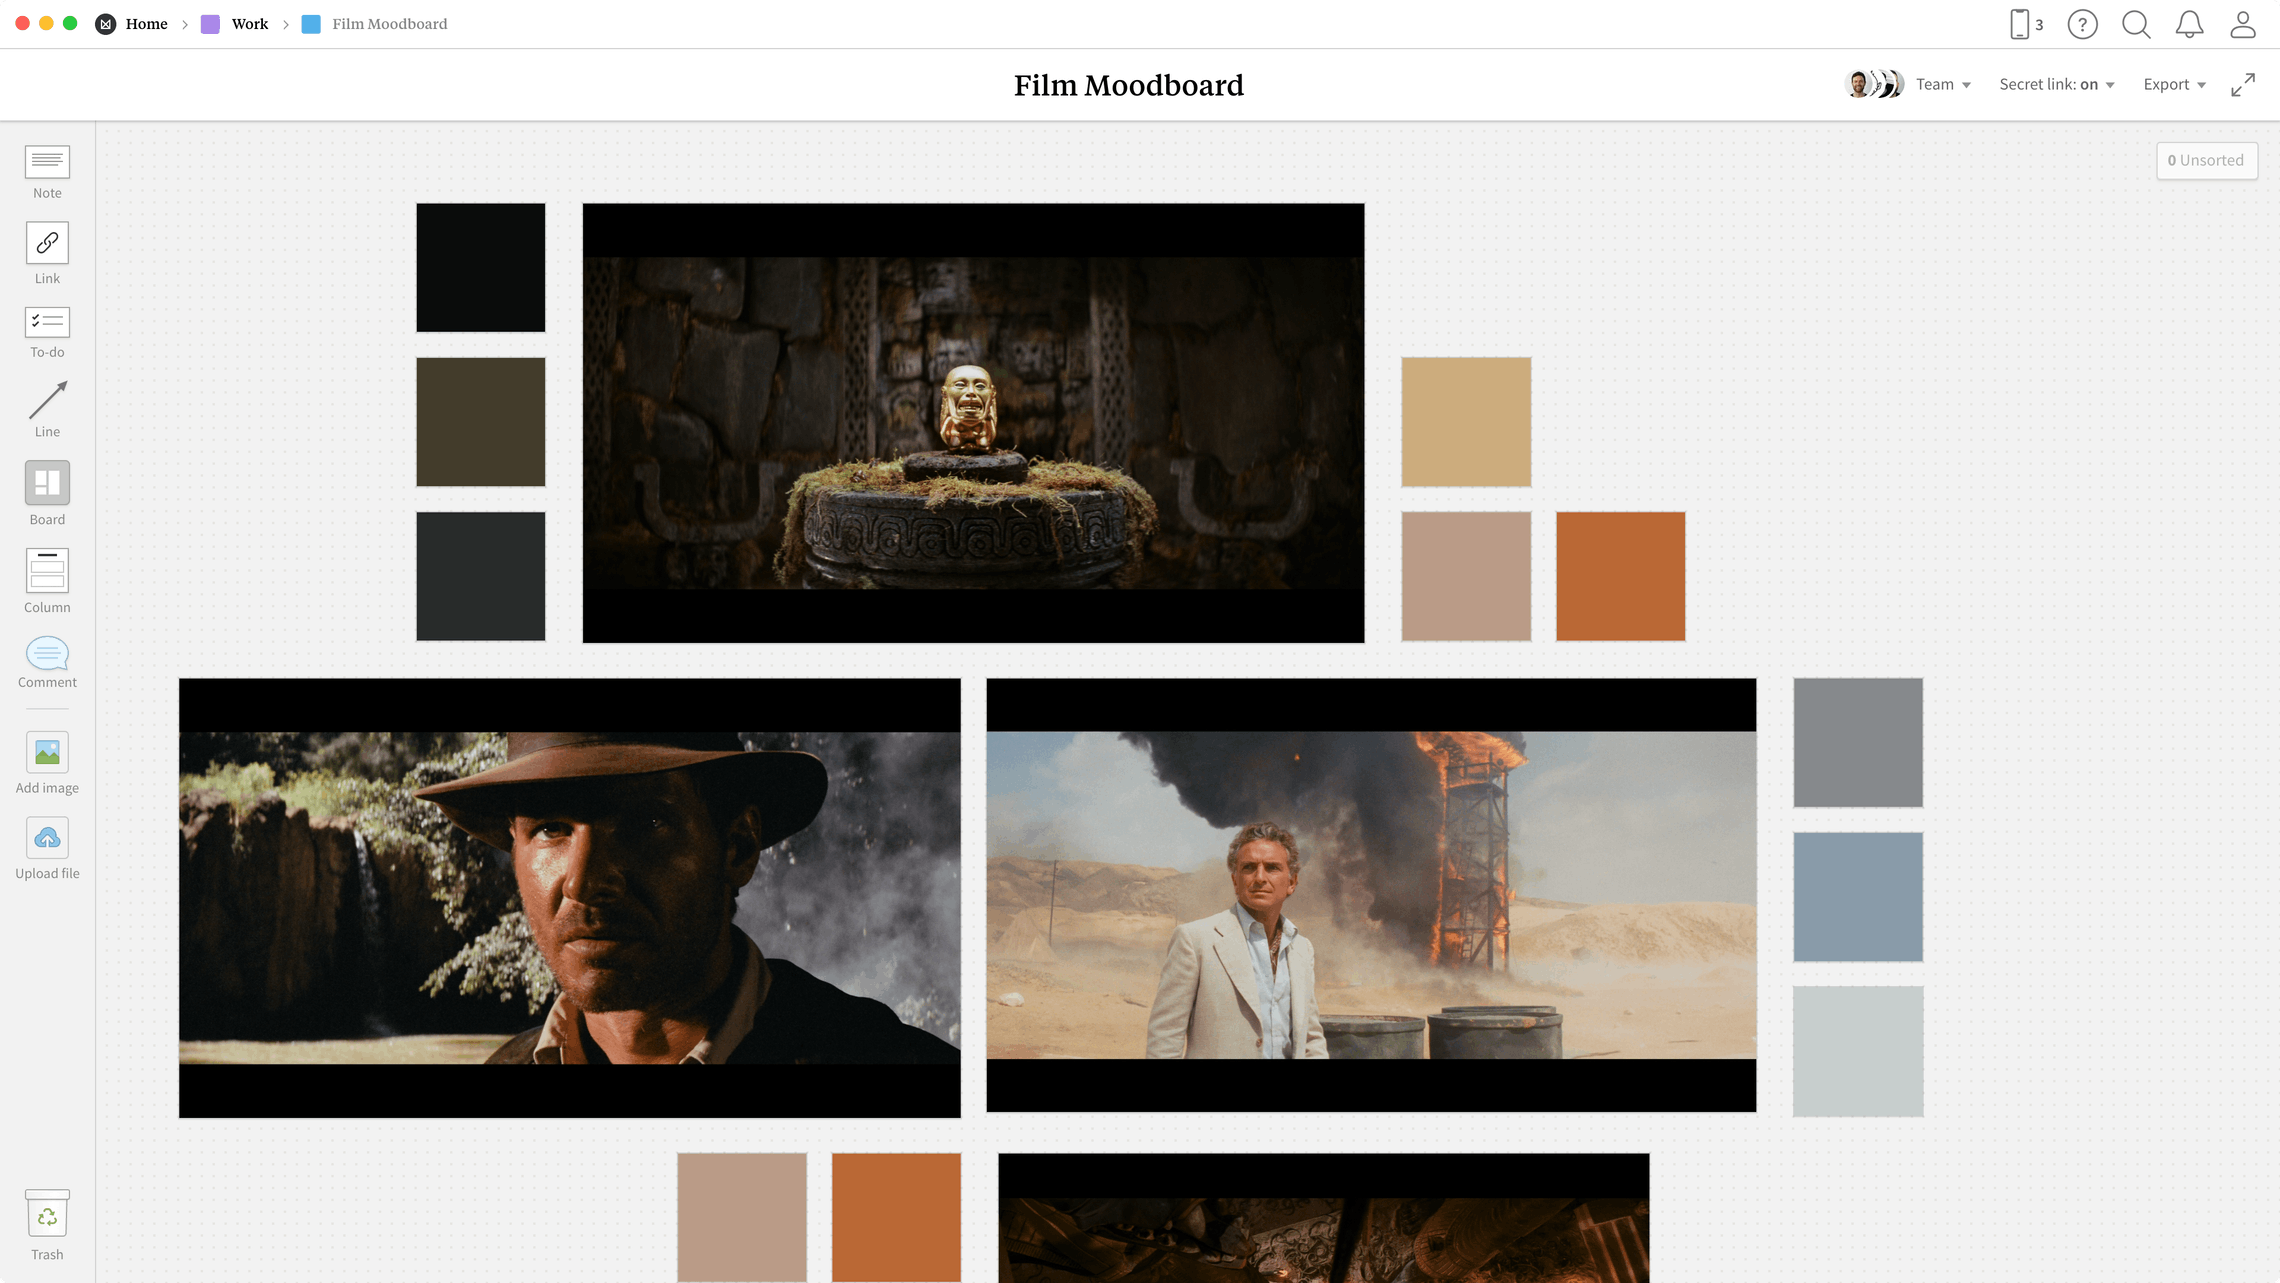 Filmmaking moodboard Template, within the Milanote app